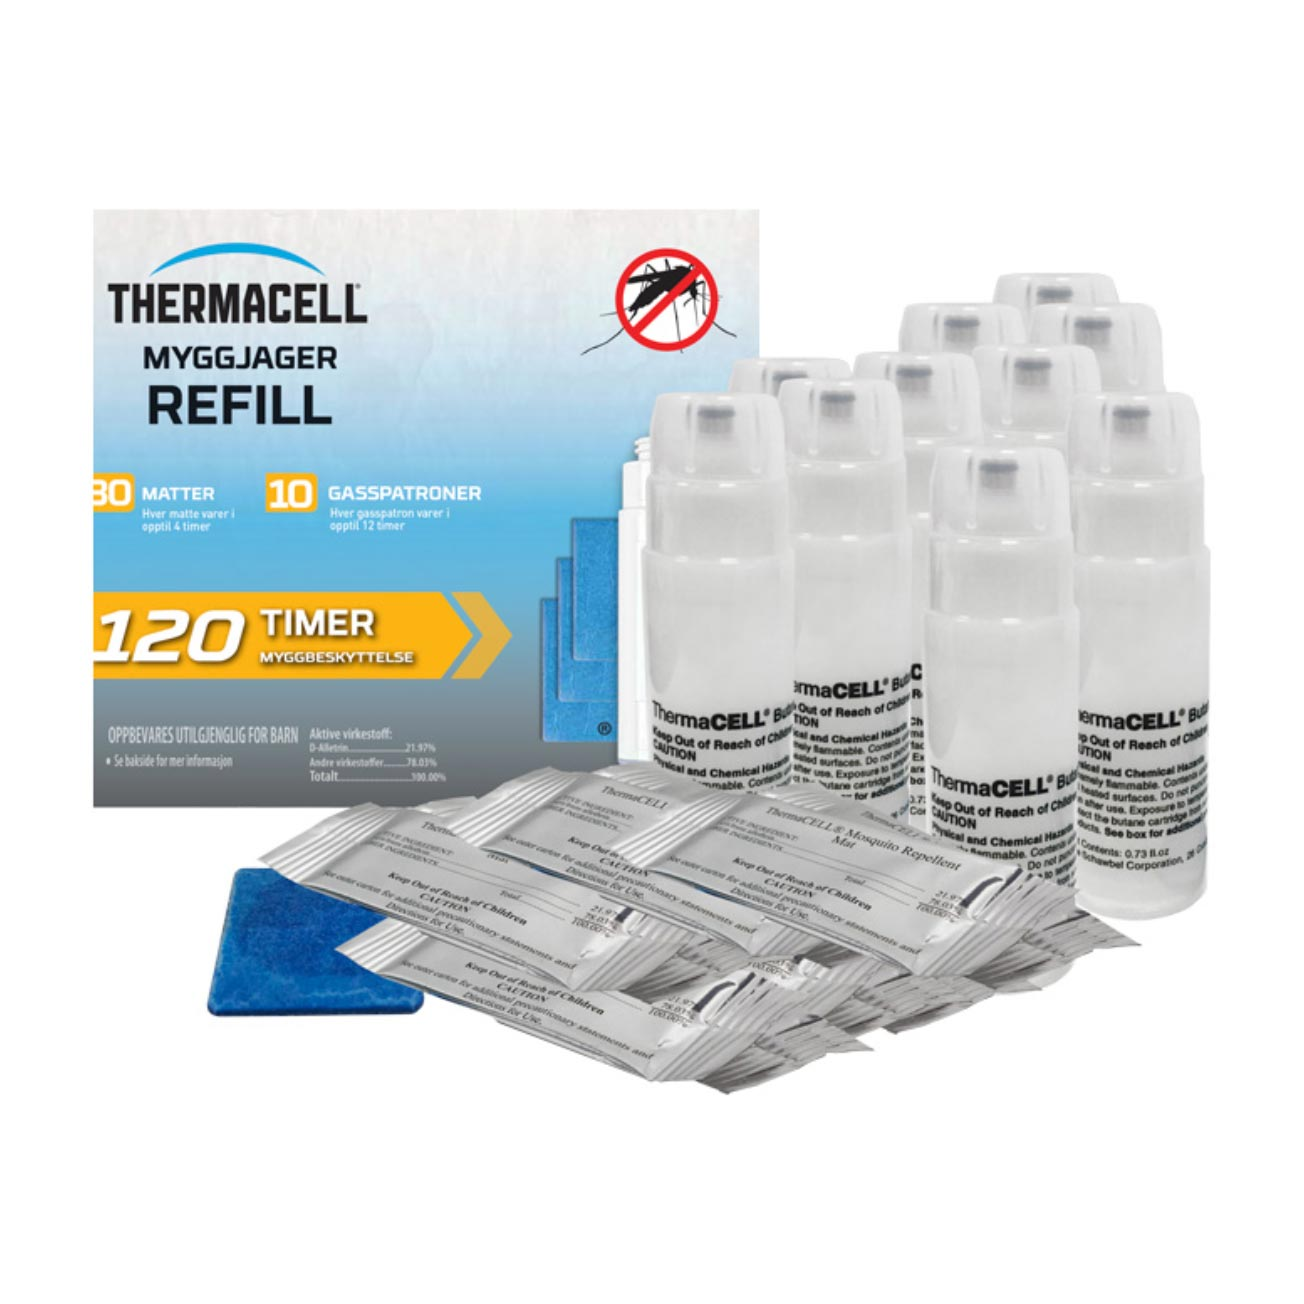 THERMACELL - MYGGJAGER REFILL 10-PK